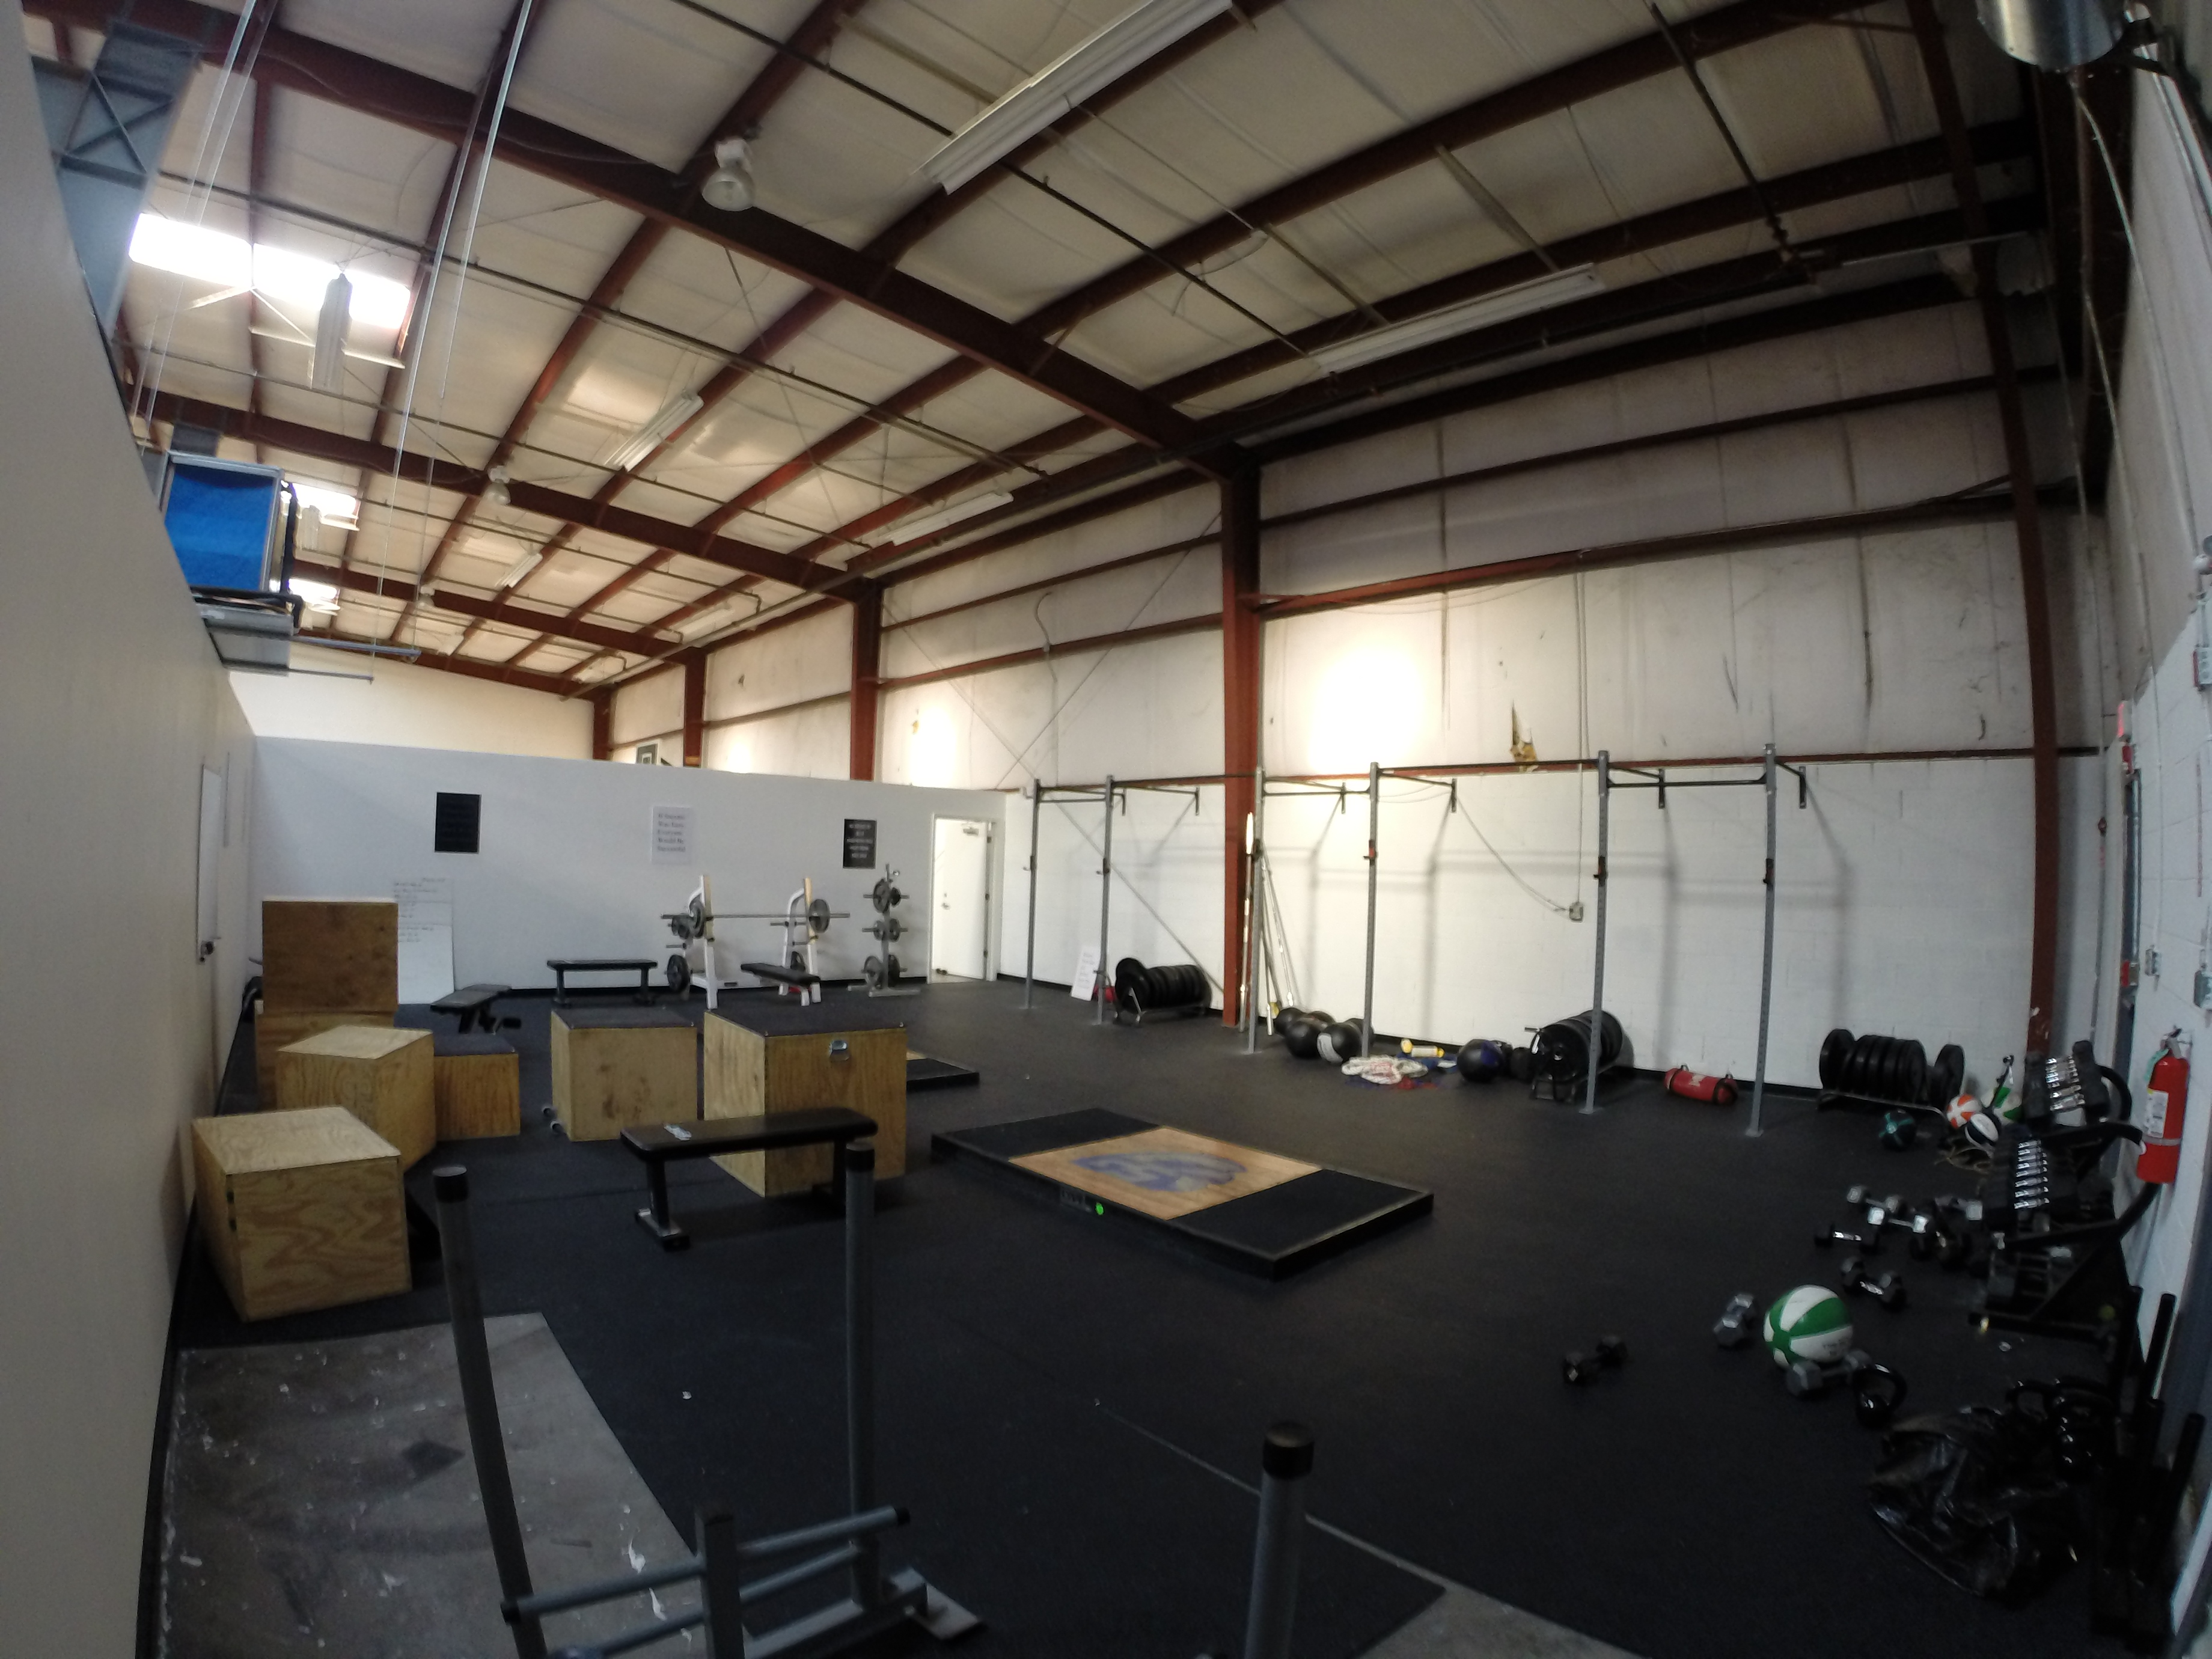 WEIGHT LIFTING AREA